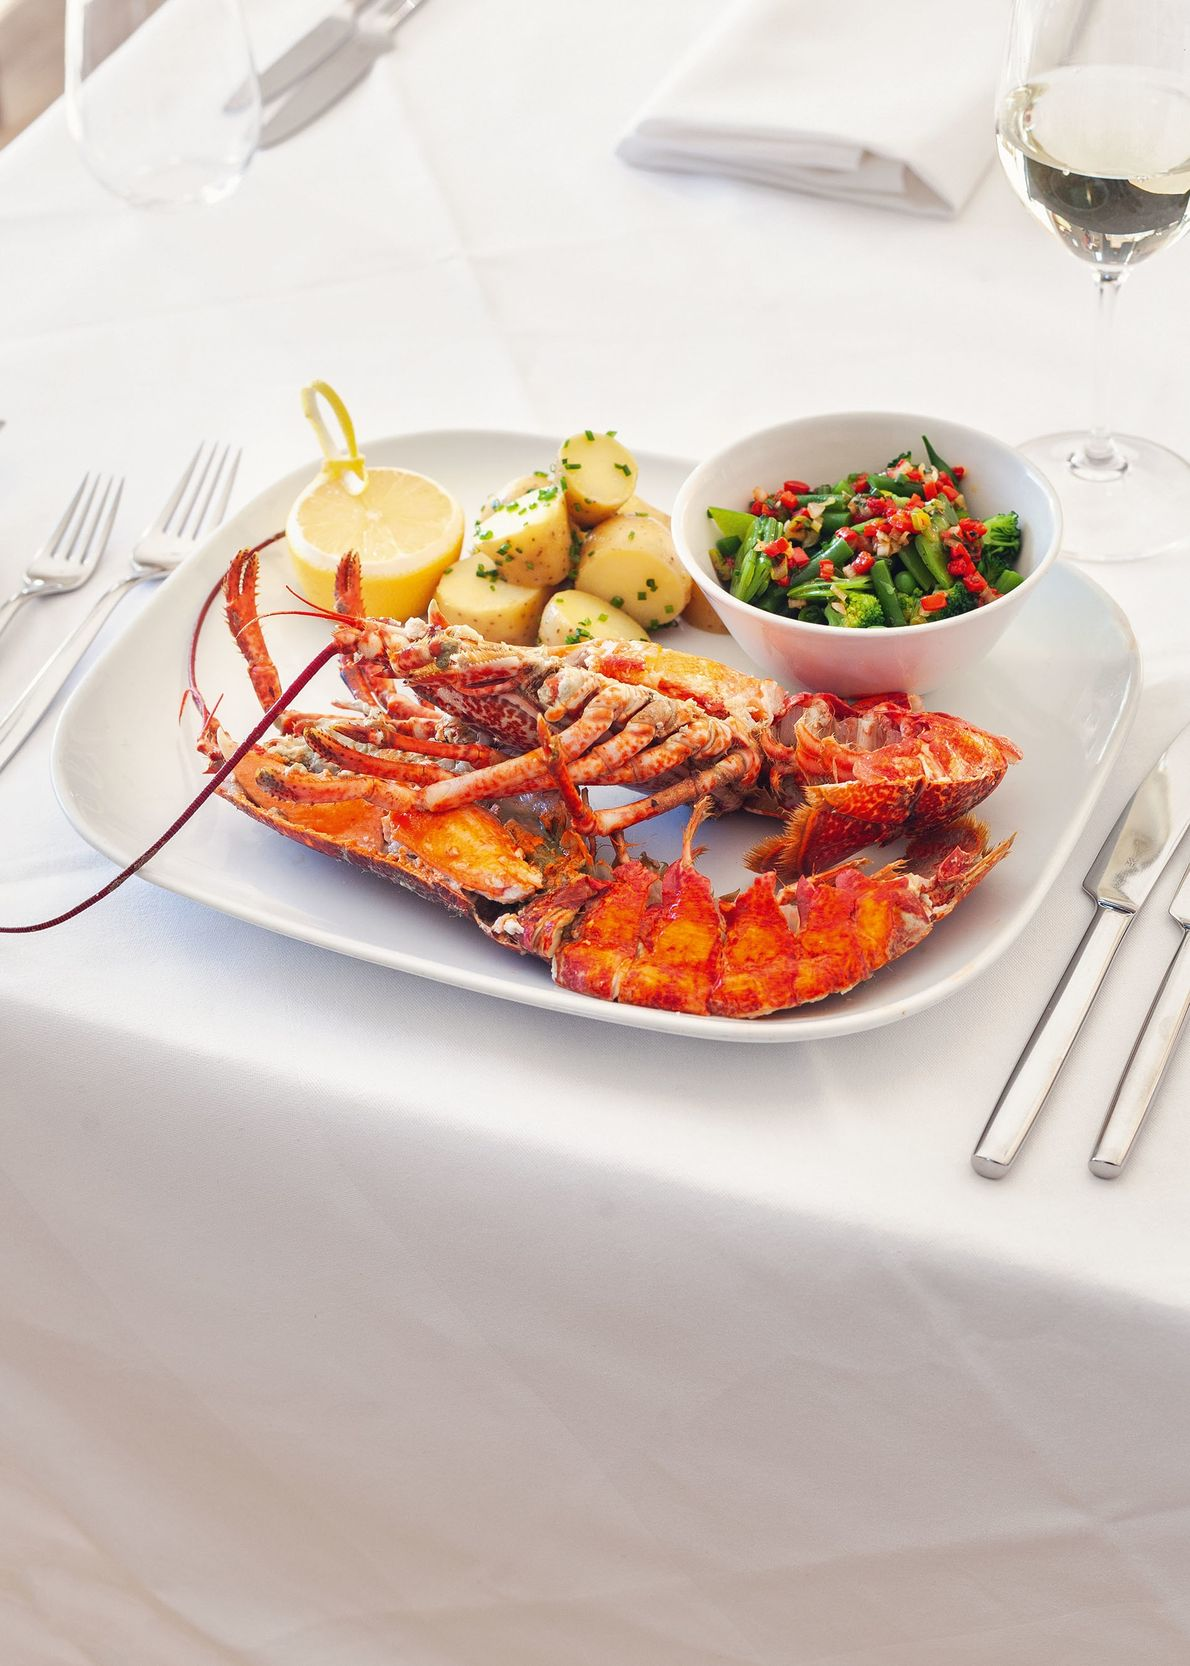 Dining on fresh lobster at The Tolbooth Seafood Restaurant, overlooking Stonehaven Harbour. The lobster seasons runs ...